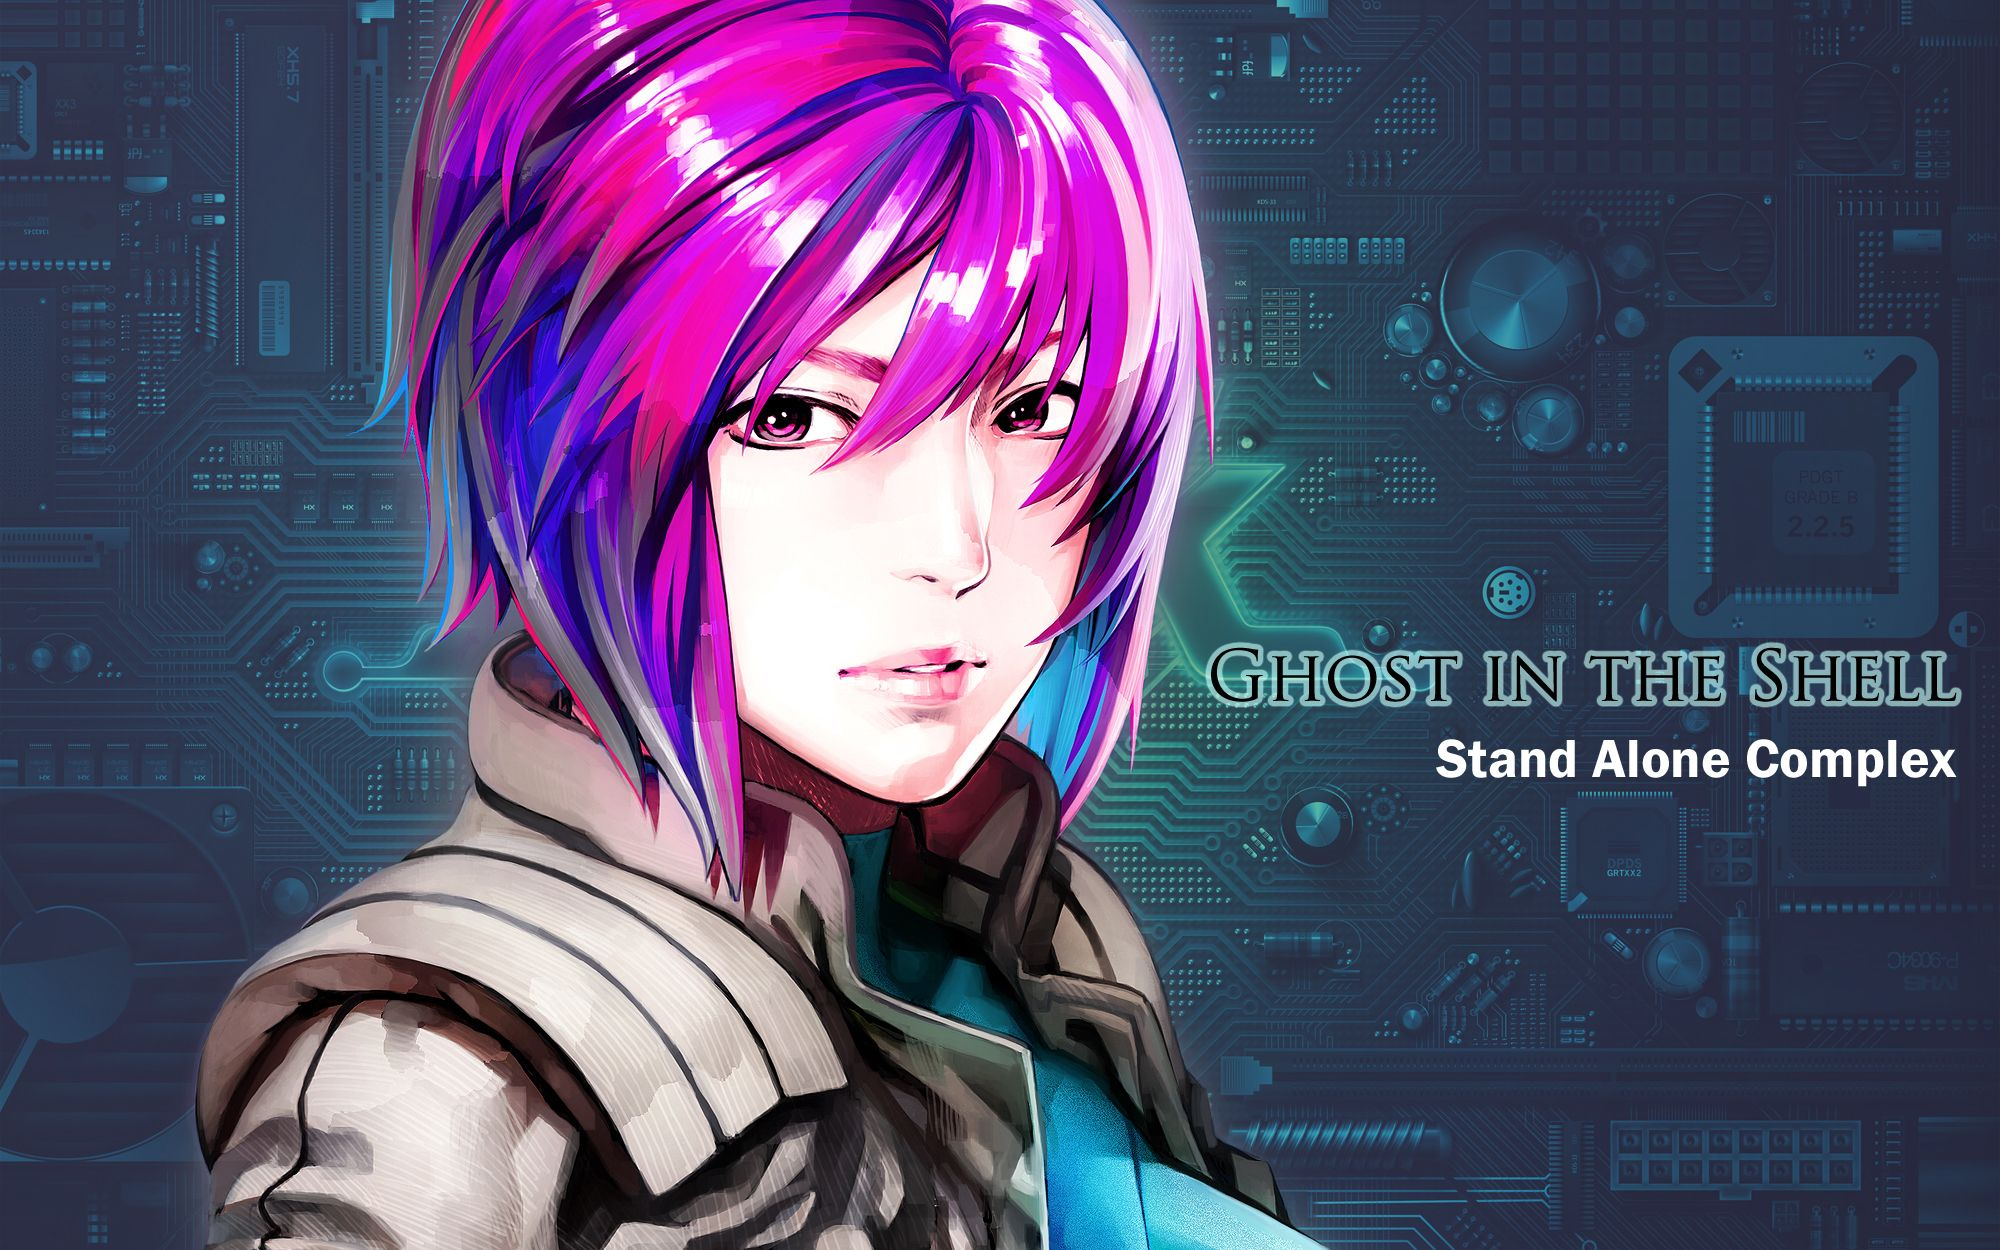 ghost in the shell stand alone complex Ghost in the